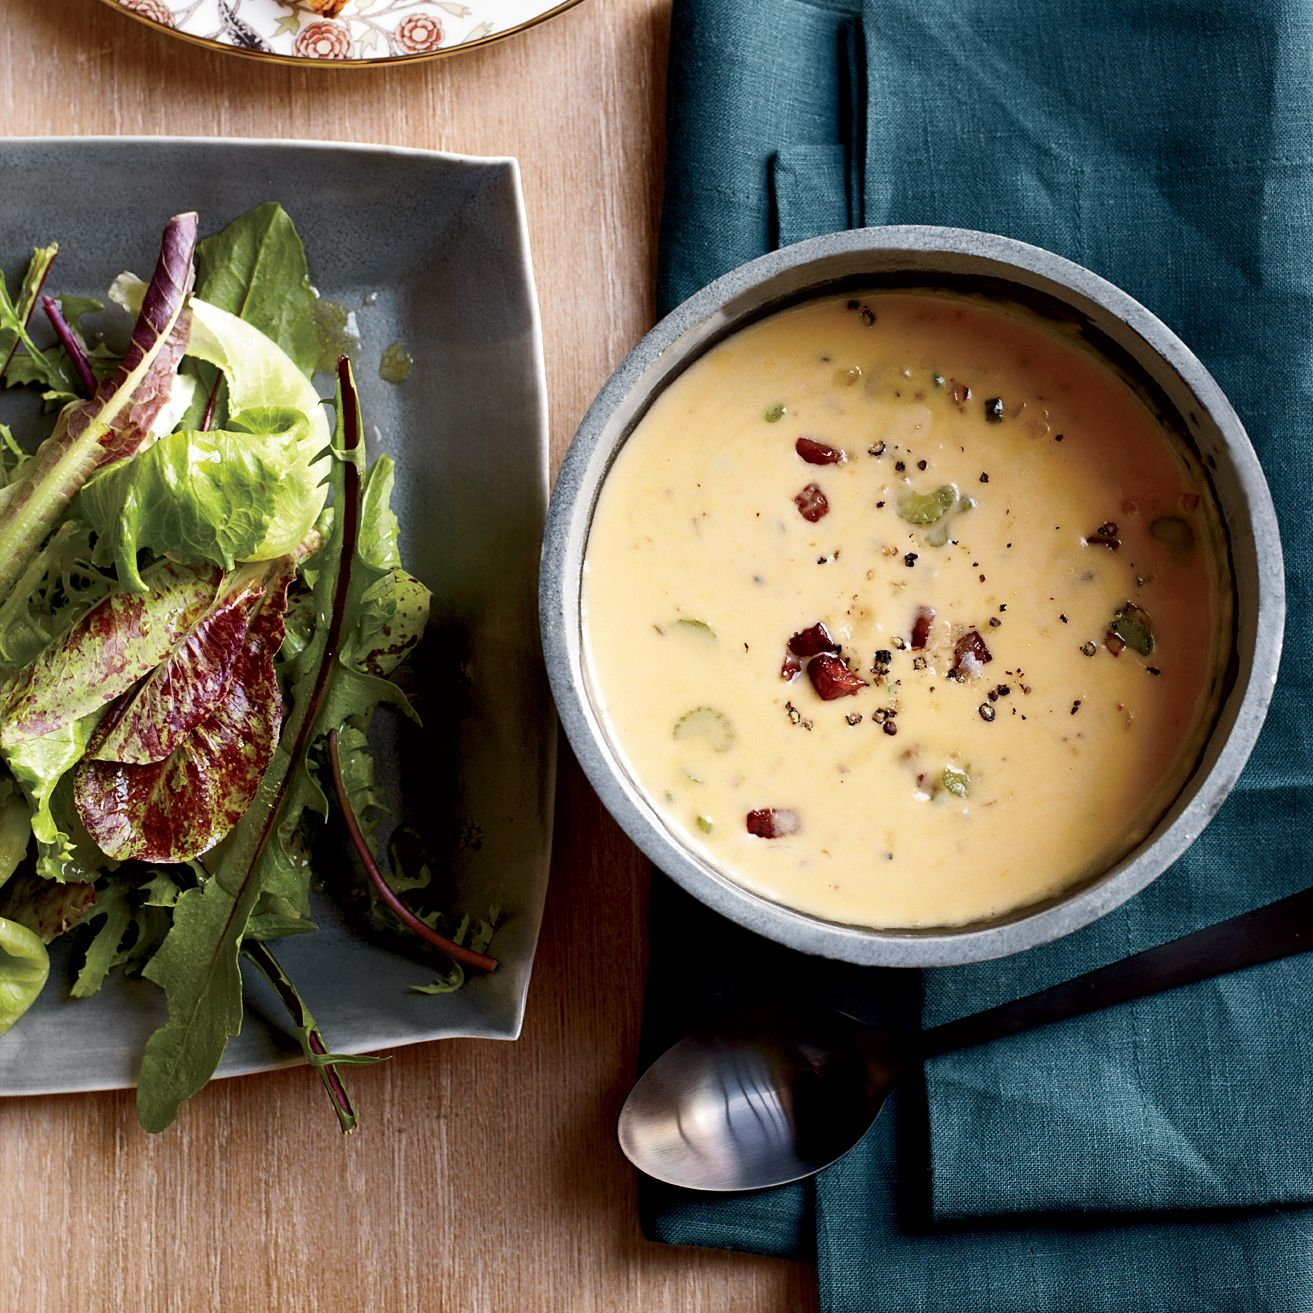 This super rich cheddar-cheese soup gets extra flavor from jalapeños, smoky bacon and a shot of beer.